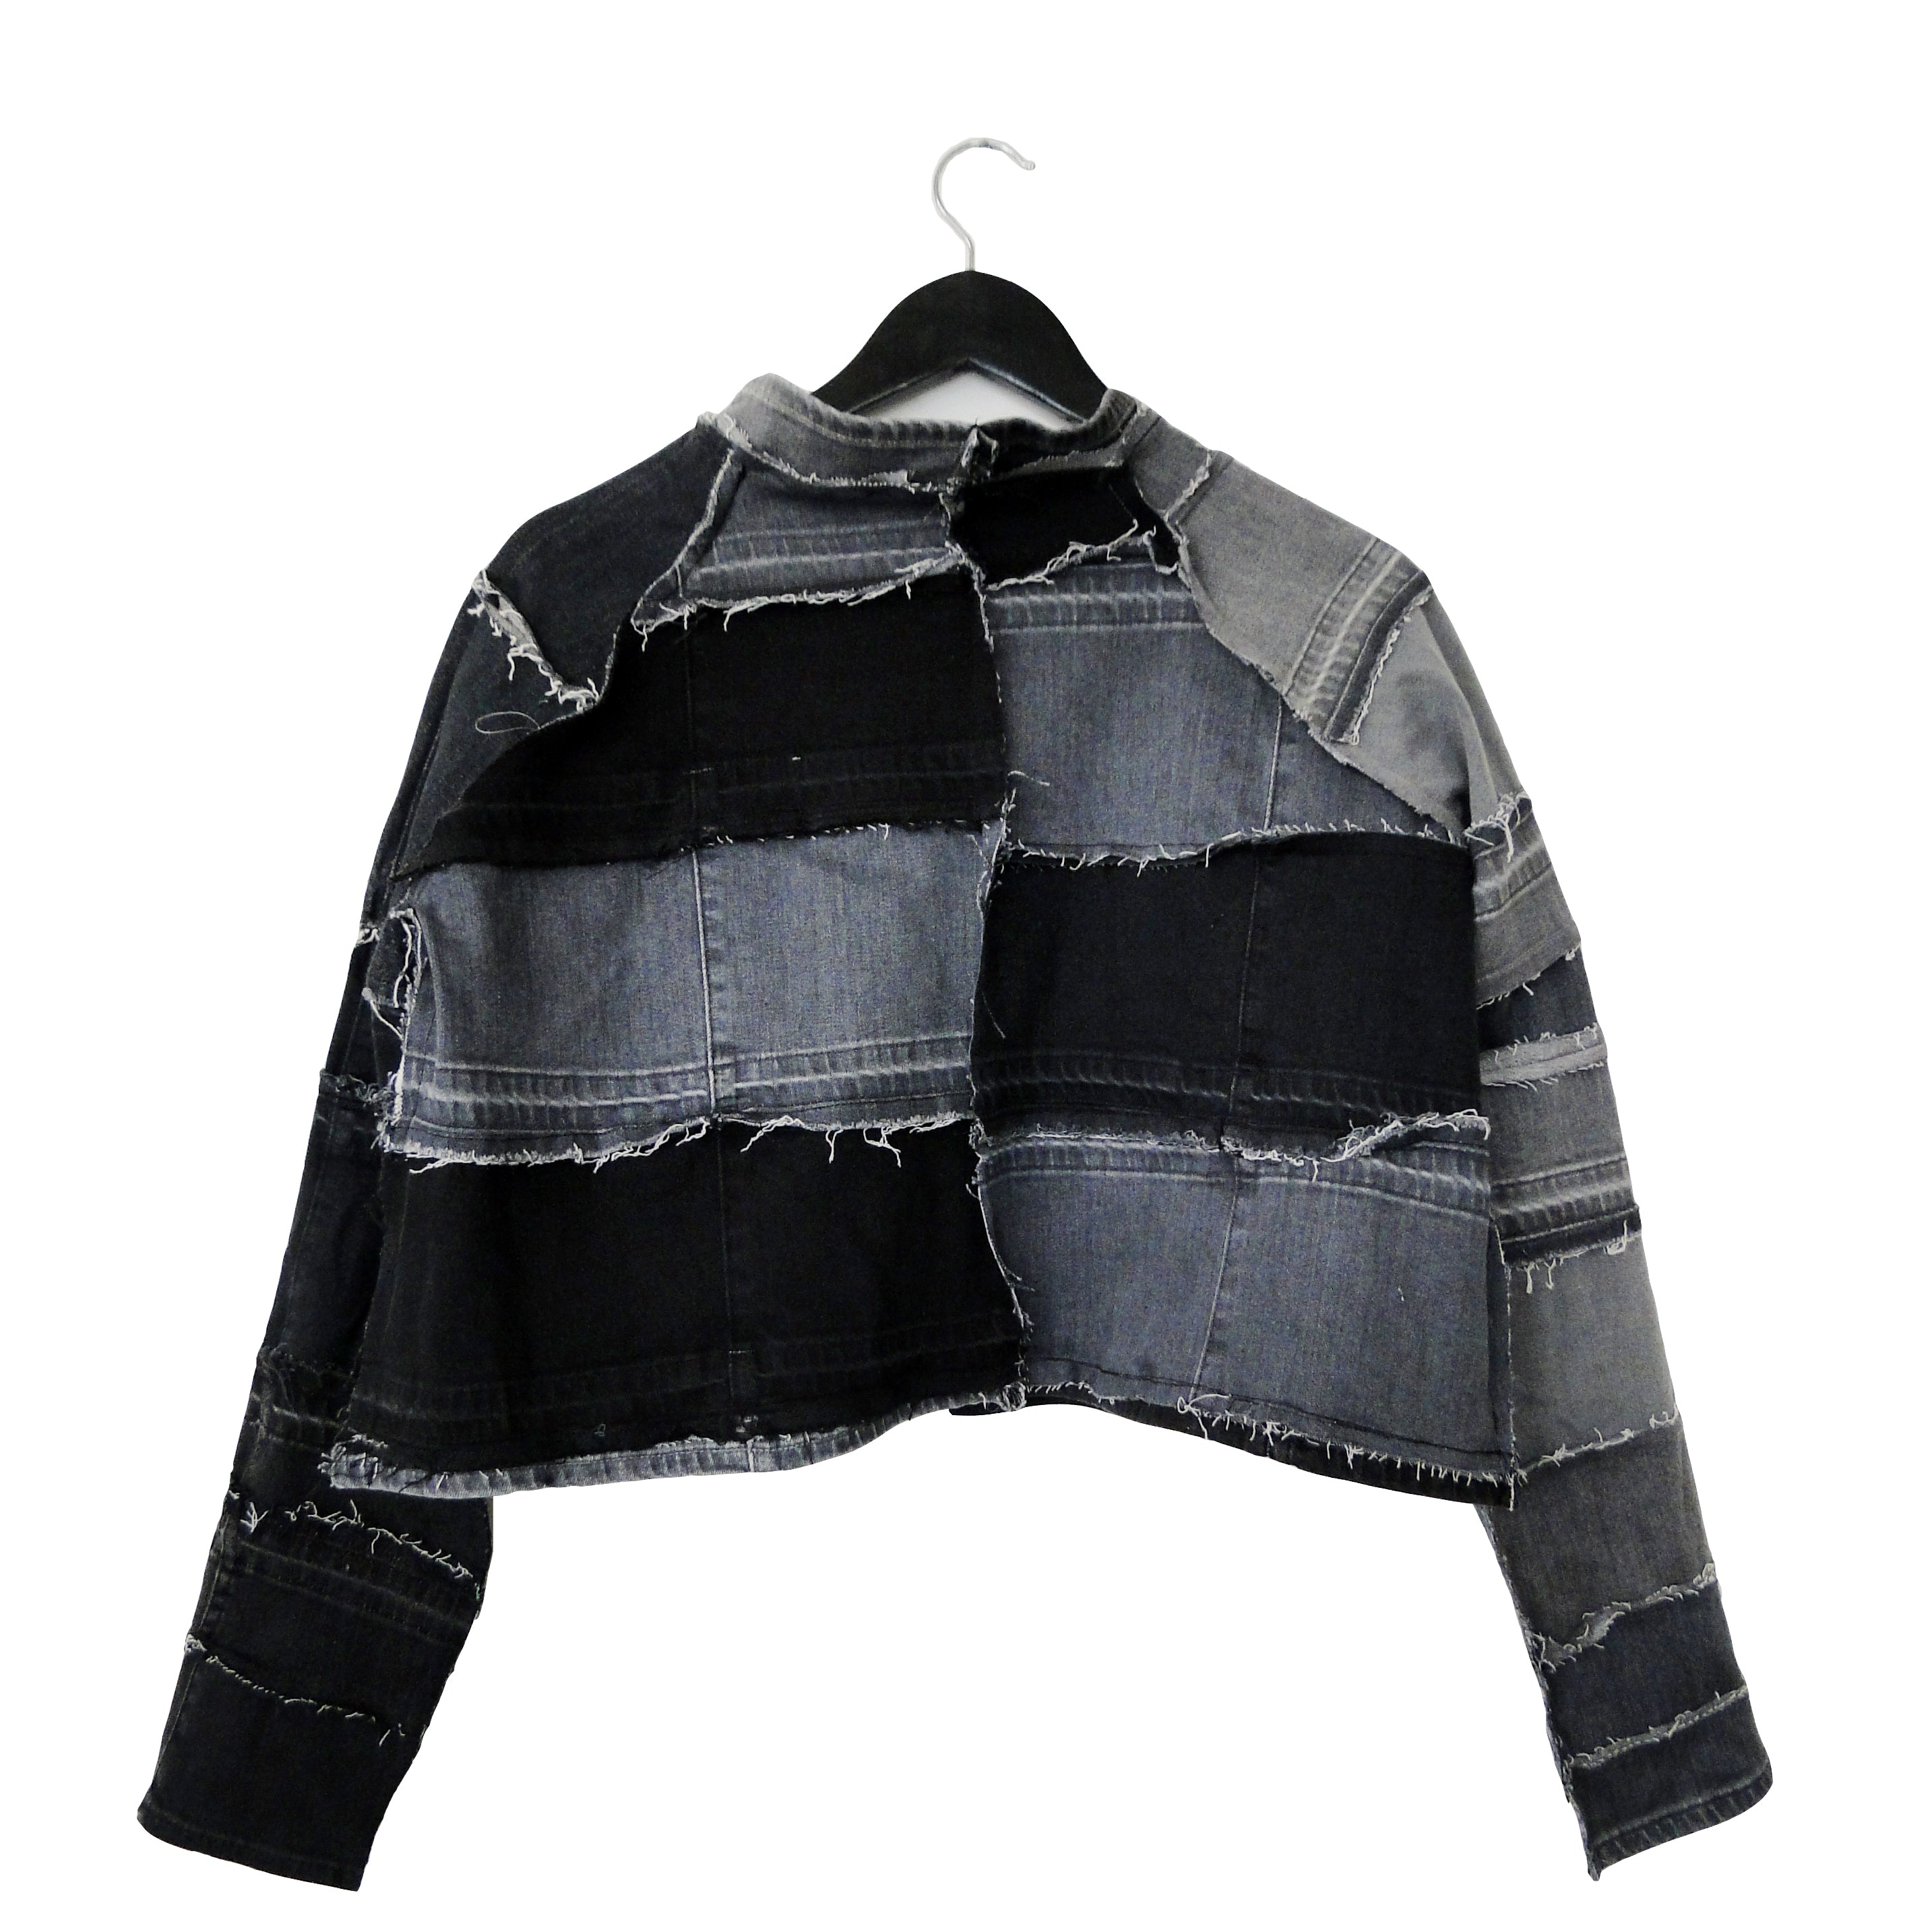 #REMIXbyStevieLeigh reversible checkerboard denim jacket